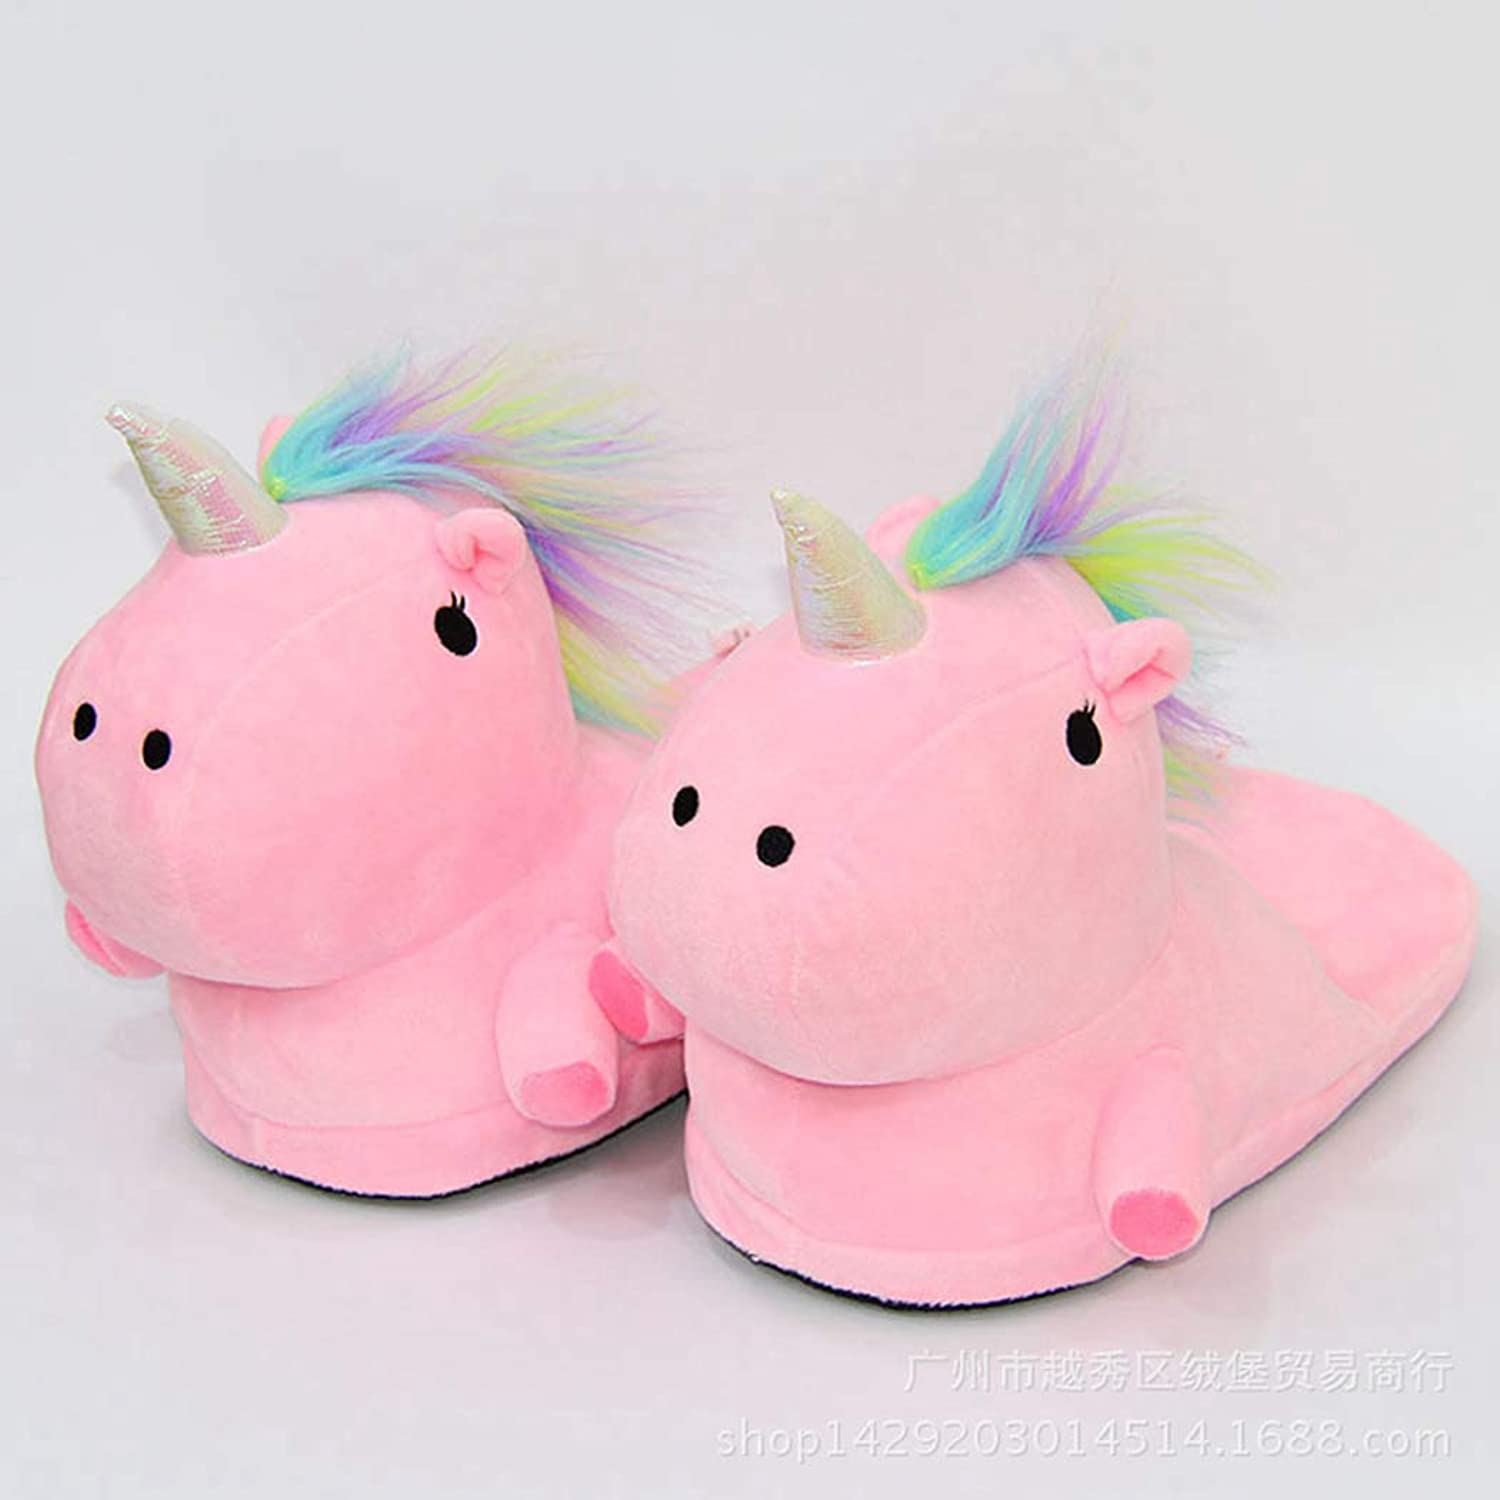 Nafanio Winter Soft Slippers Adult Unicorn Memory Foam Arch Support Indoor Bedroom Warm Girl shoes